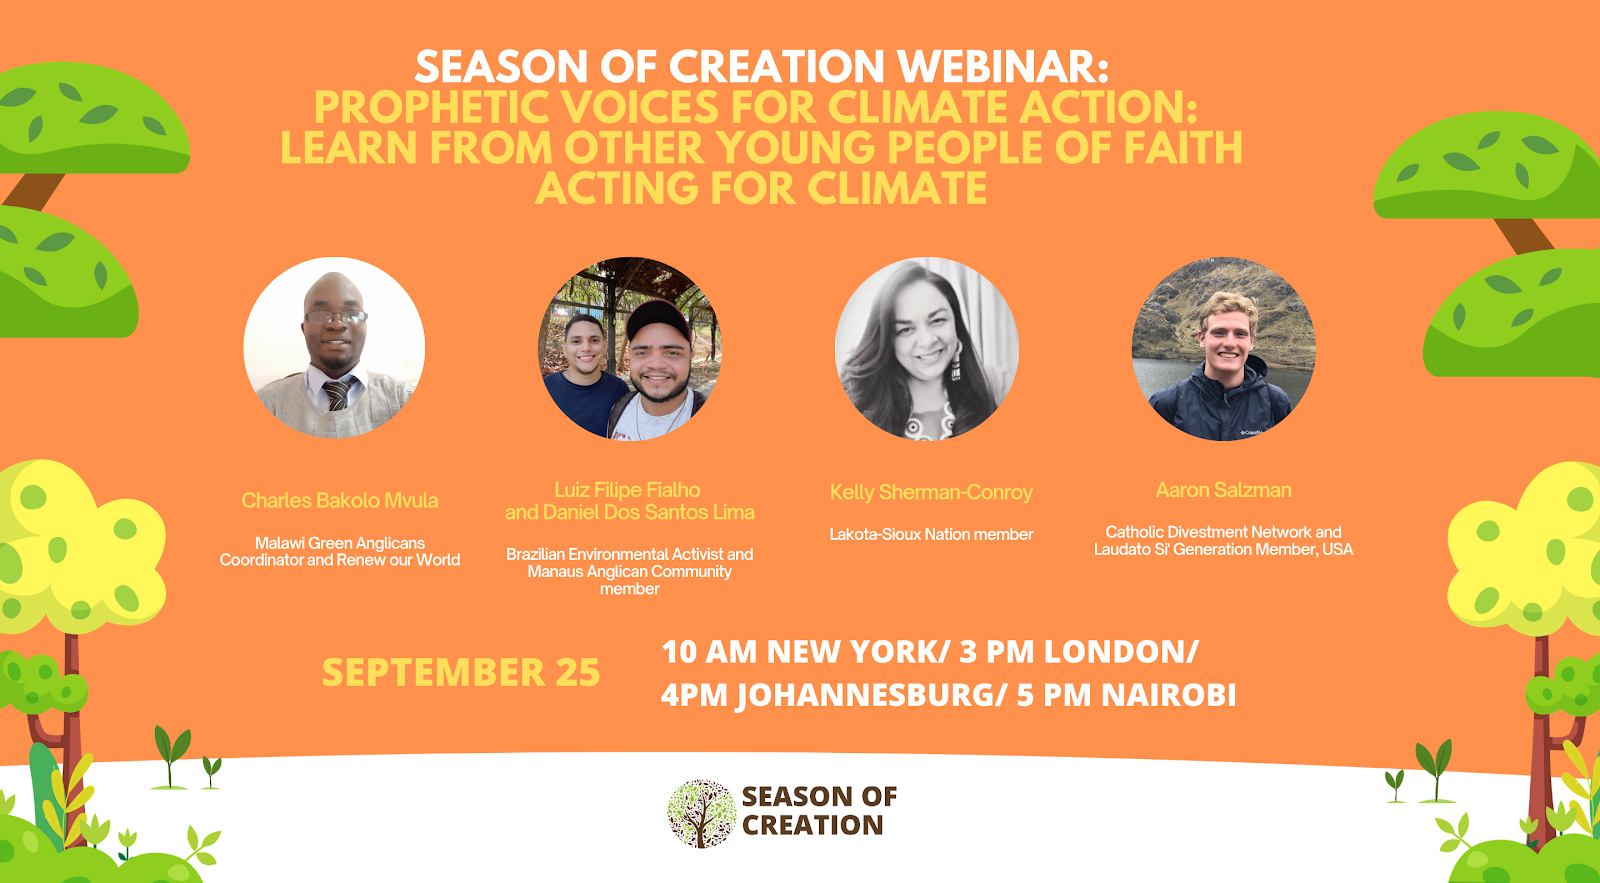 learning from young people of faith acting for climate